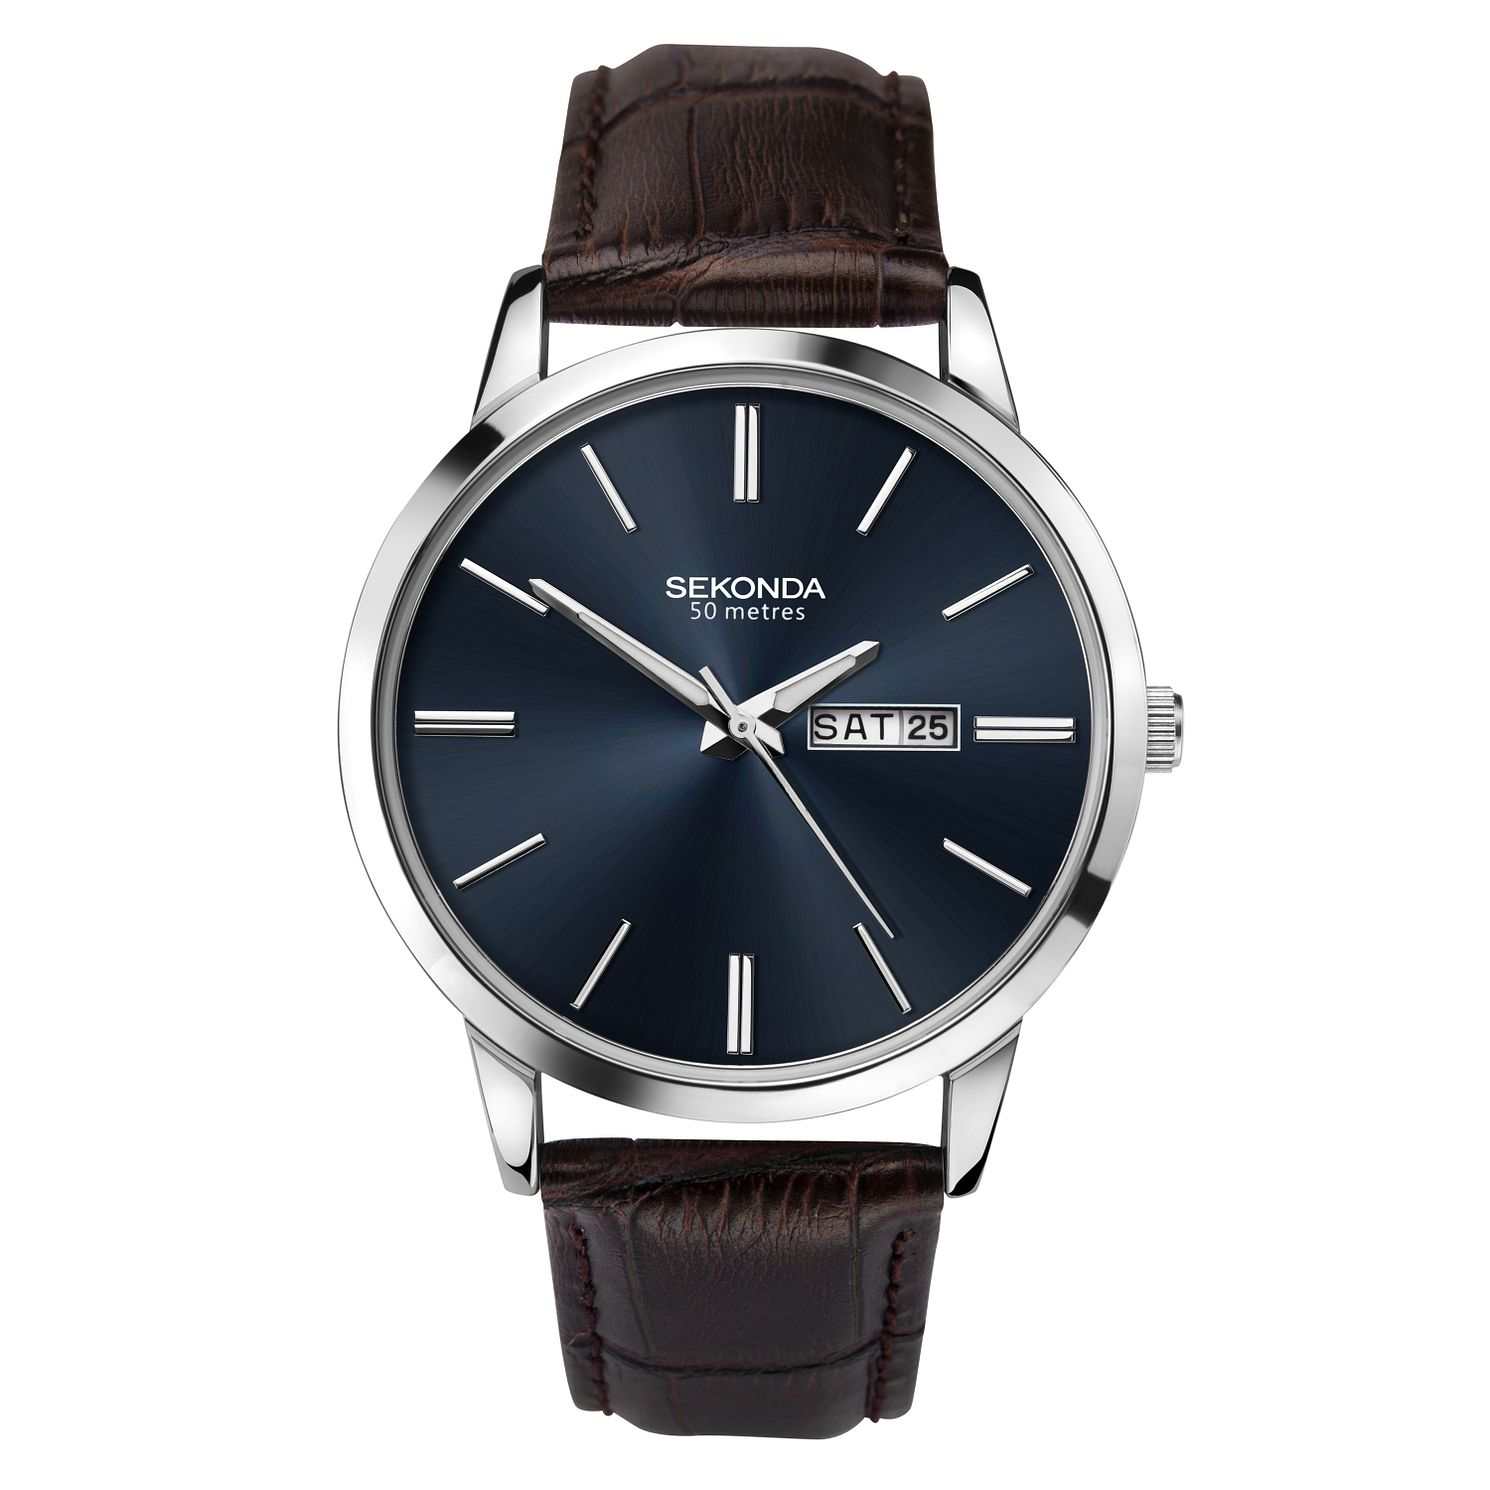 Sekonda Men's Dark Brown Leather Strap Watch - Product number 9795170